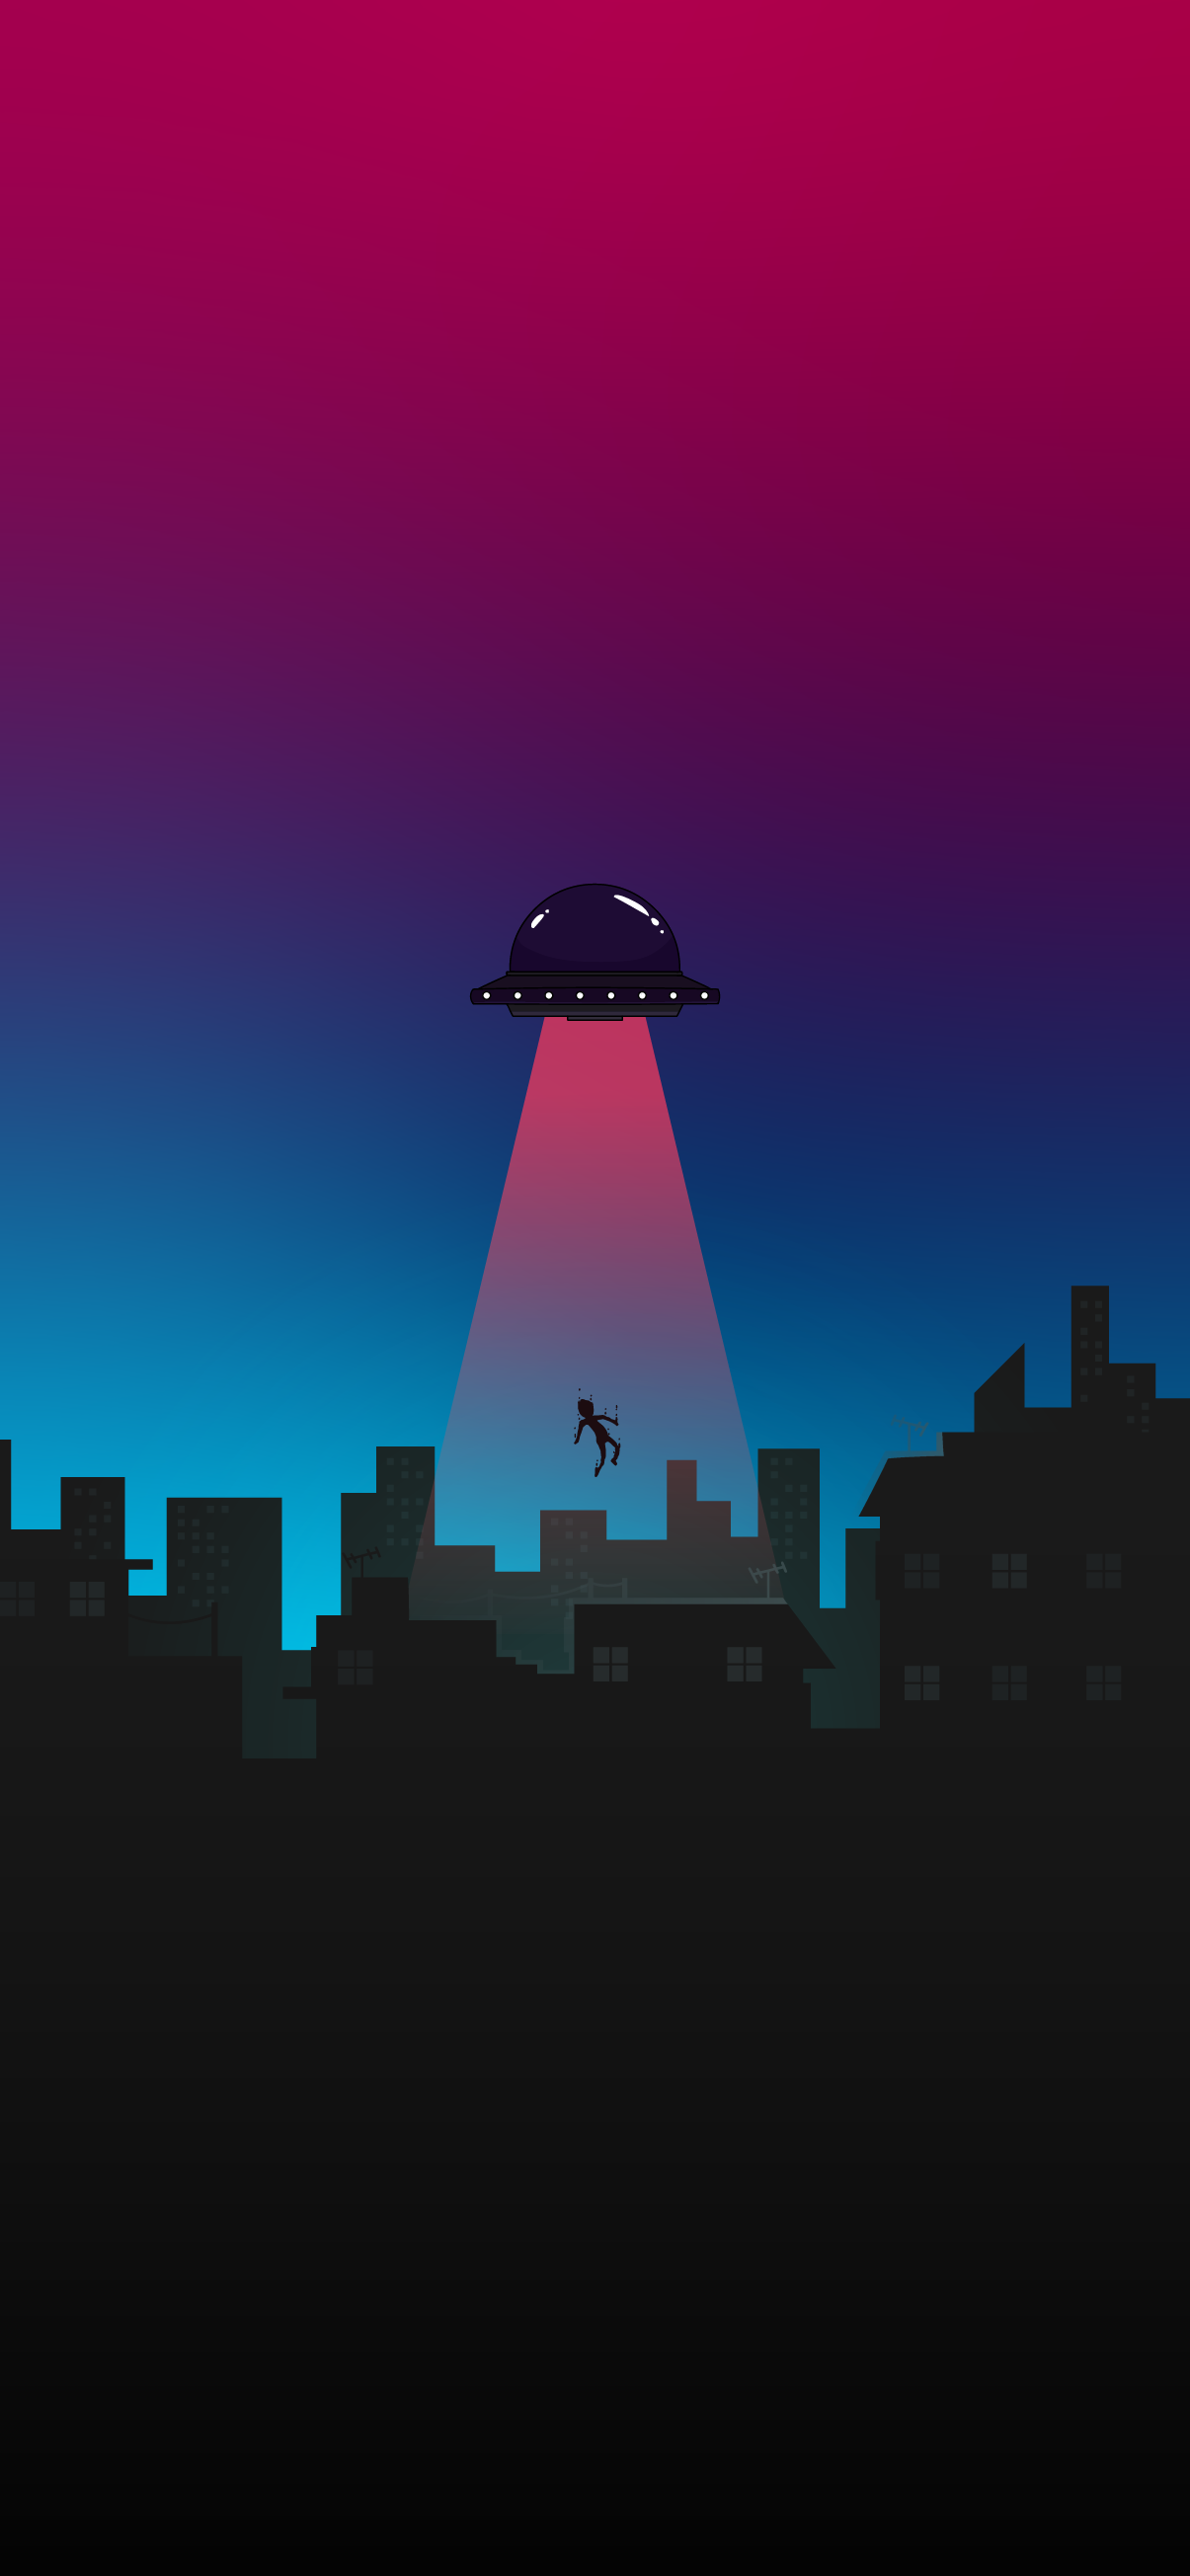 ufo abduction background wallpaper iphone 4k